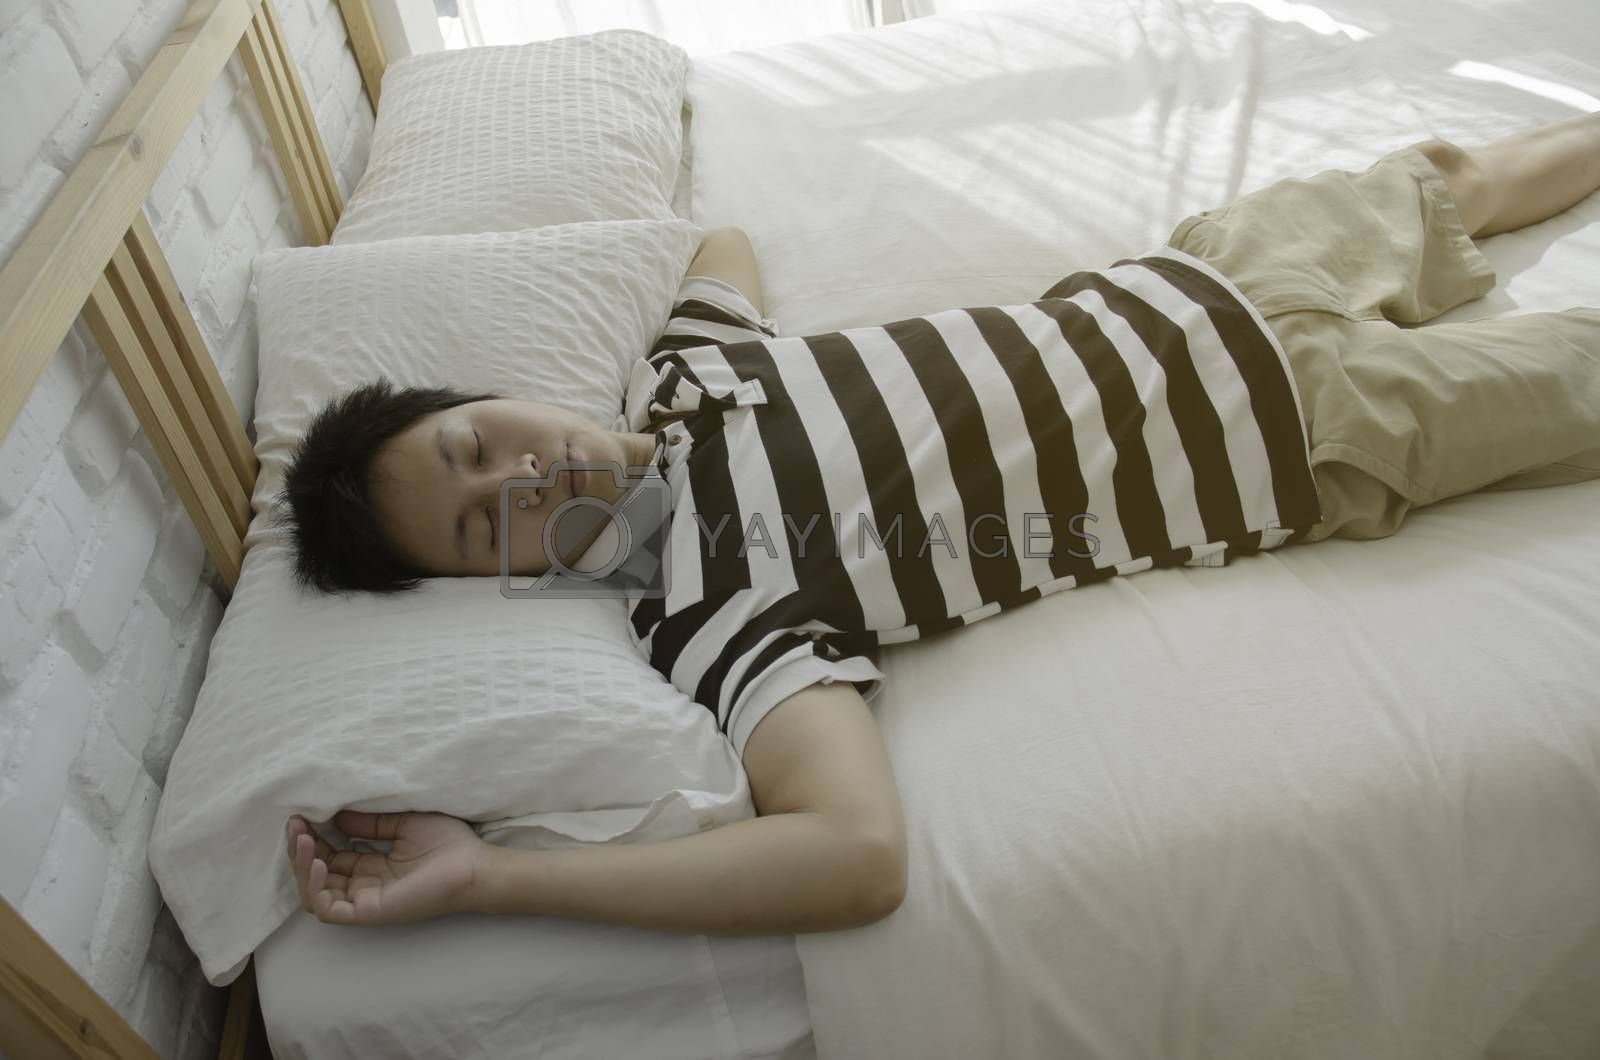 Asian guy sleeping in a white bedroom.Man sleeps well in bed in a white bedroom. Relax in the room.He was sleeping in the morning with sunlight. Warm.He man kneeling bent on the bed.